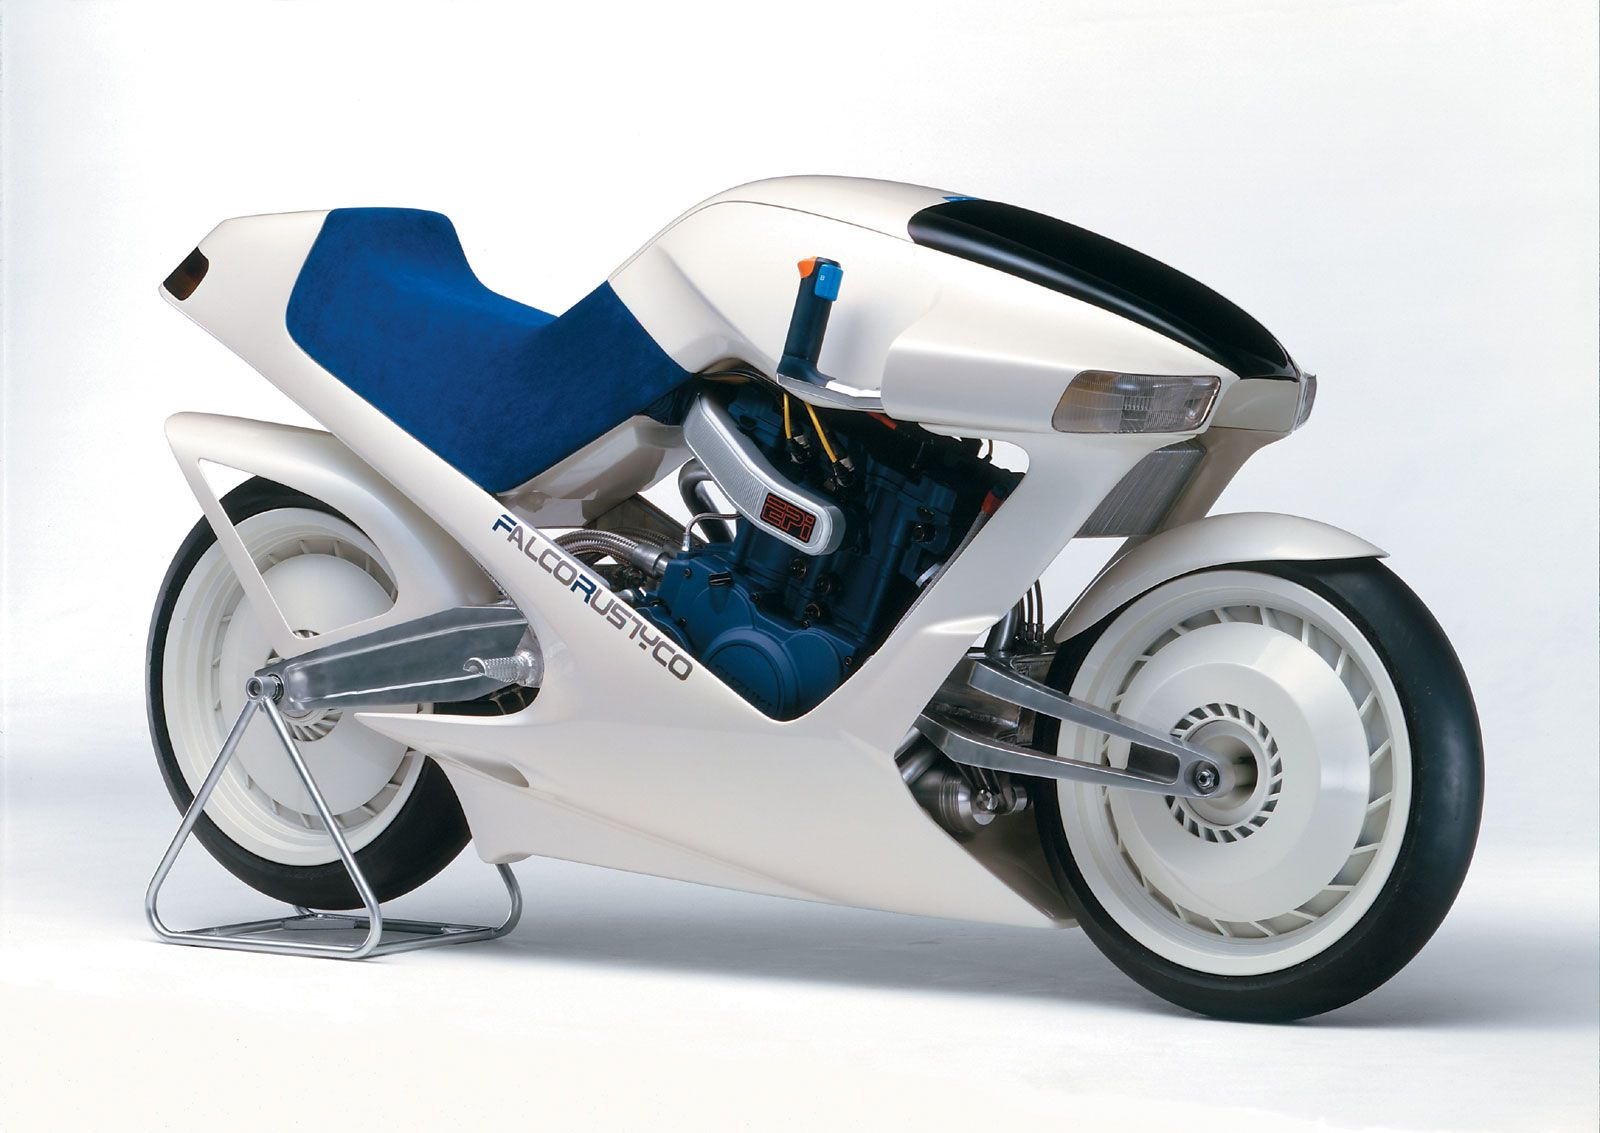 10 Cool Concept Motorcycles With Zero Chance Of Making It Into Production